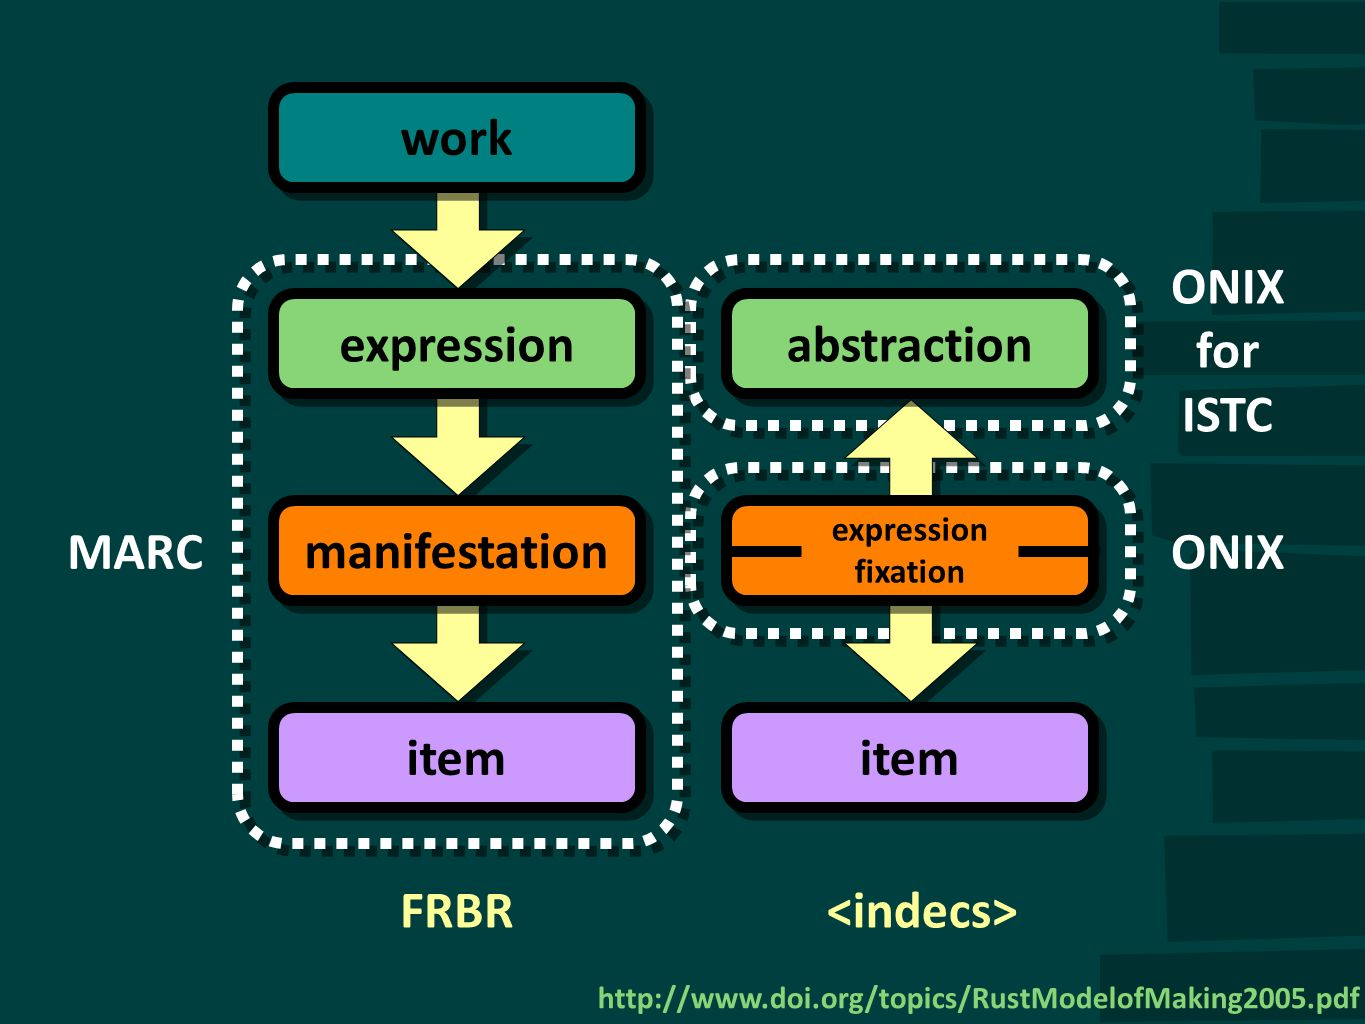 work manifestation item FRBR ONIXMARC item work expression manifestation ONIX for ISTC expression fixation abstraction http://www.doi.org/topics/RustM